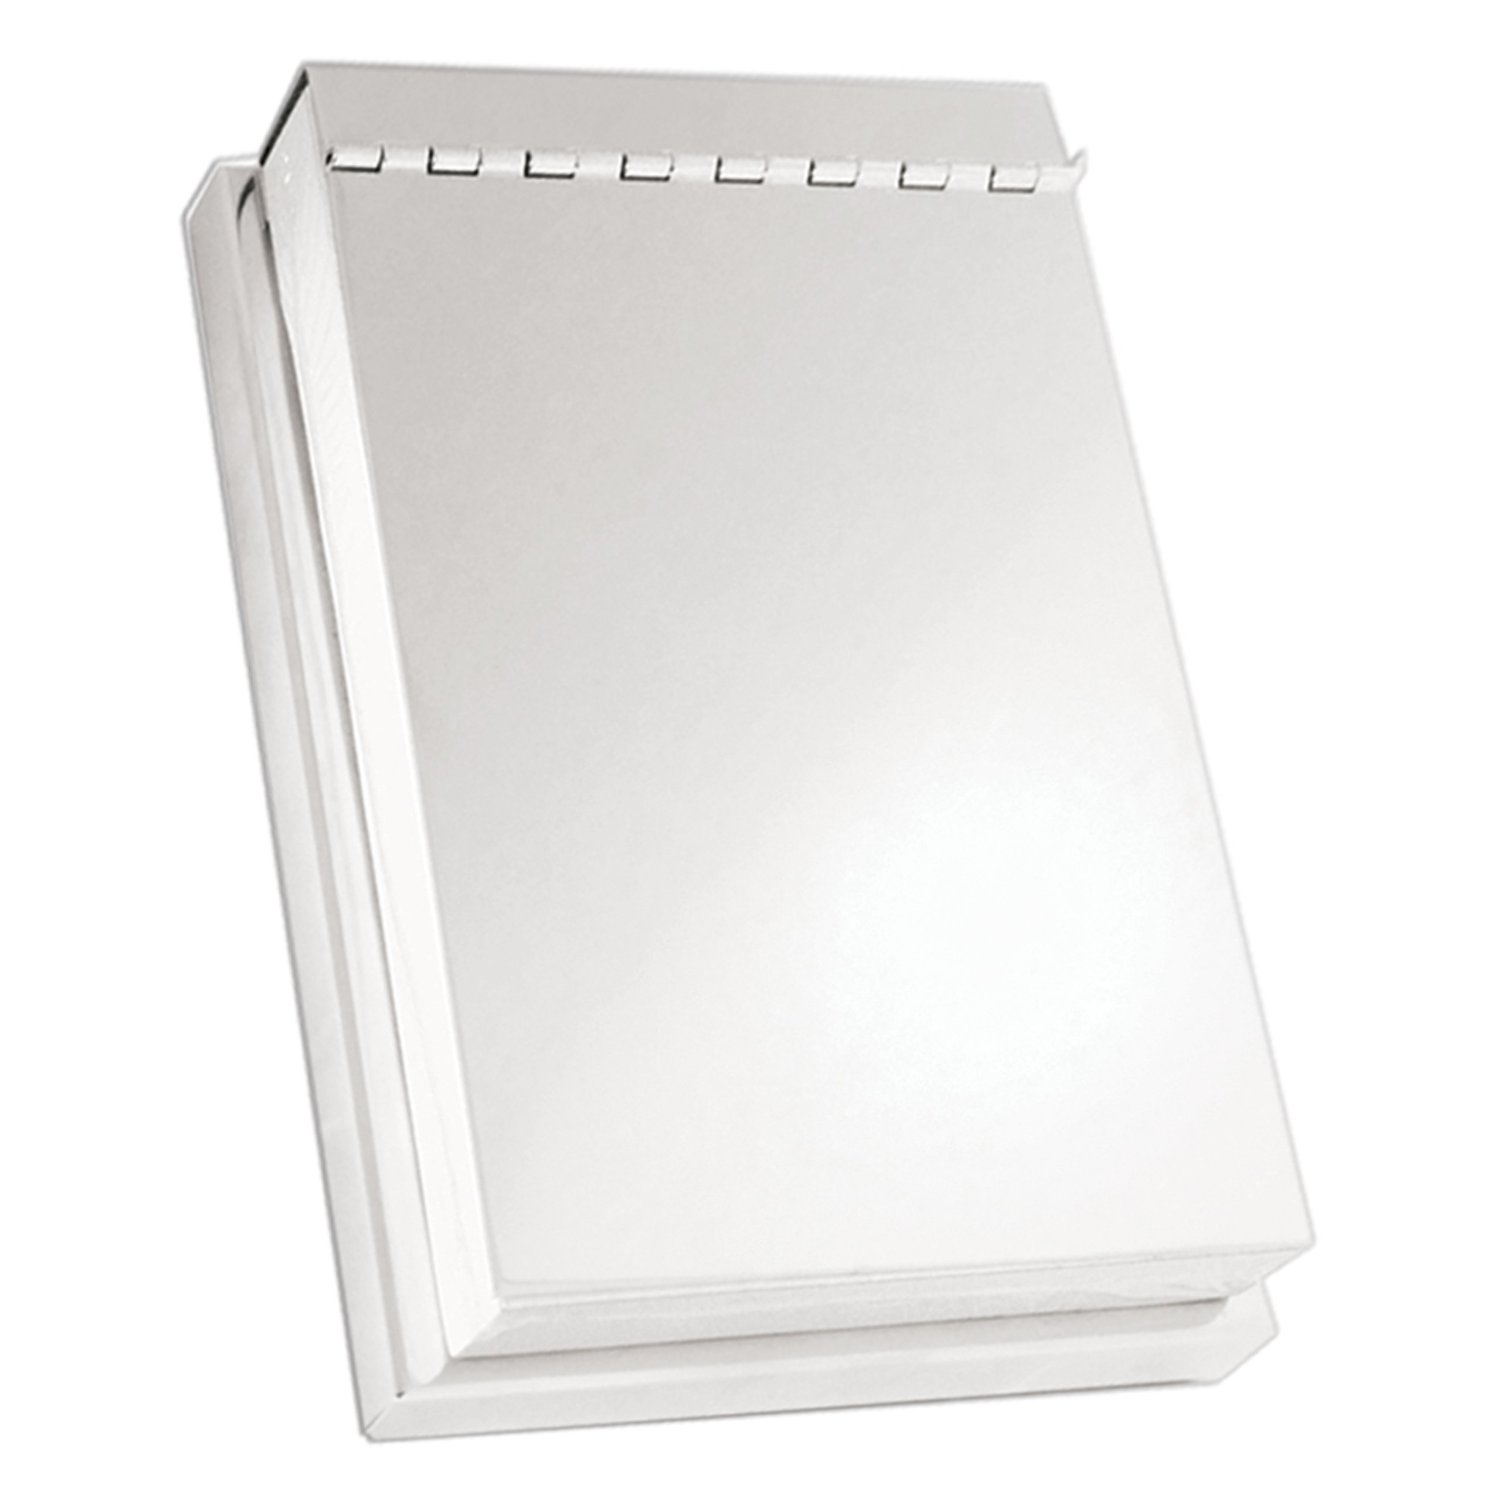 Silver Covered Note Pad Holder with 3x5 Note Pad Included